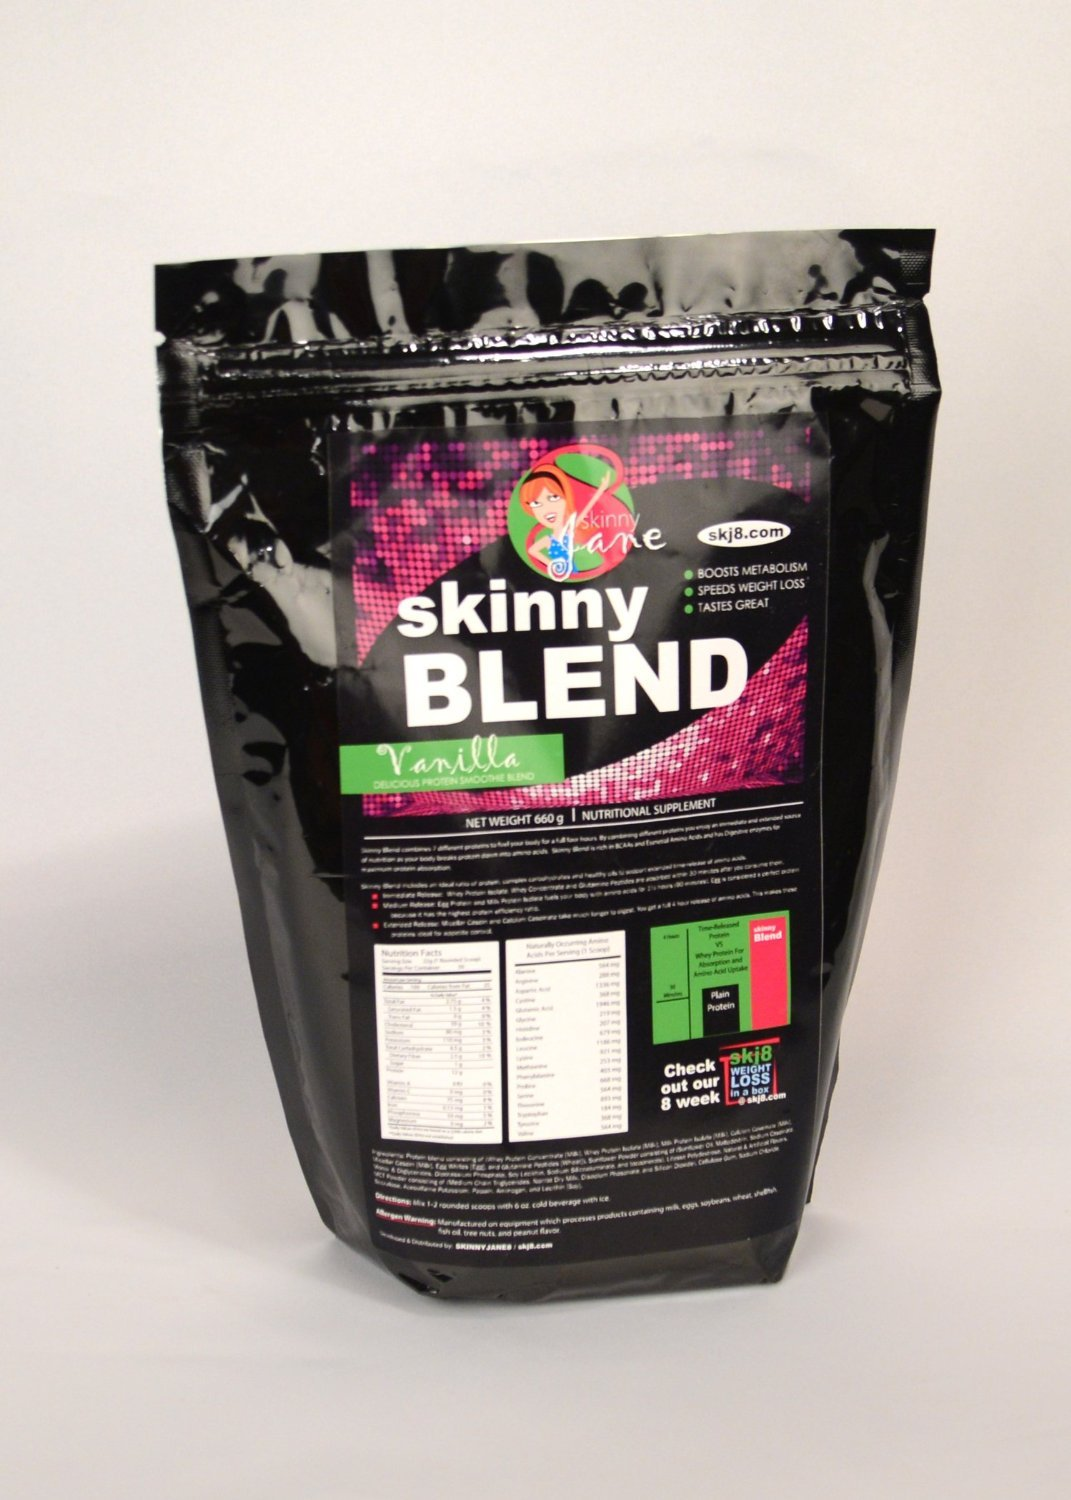 Skinny Blend - Best Tasting Protein Shake for Women Weight Loss 30 Shakes per Bag (Vanilla)